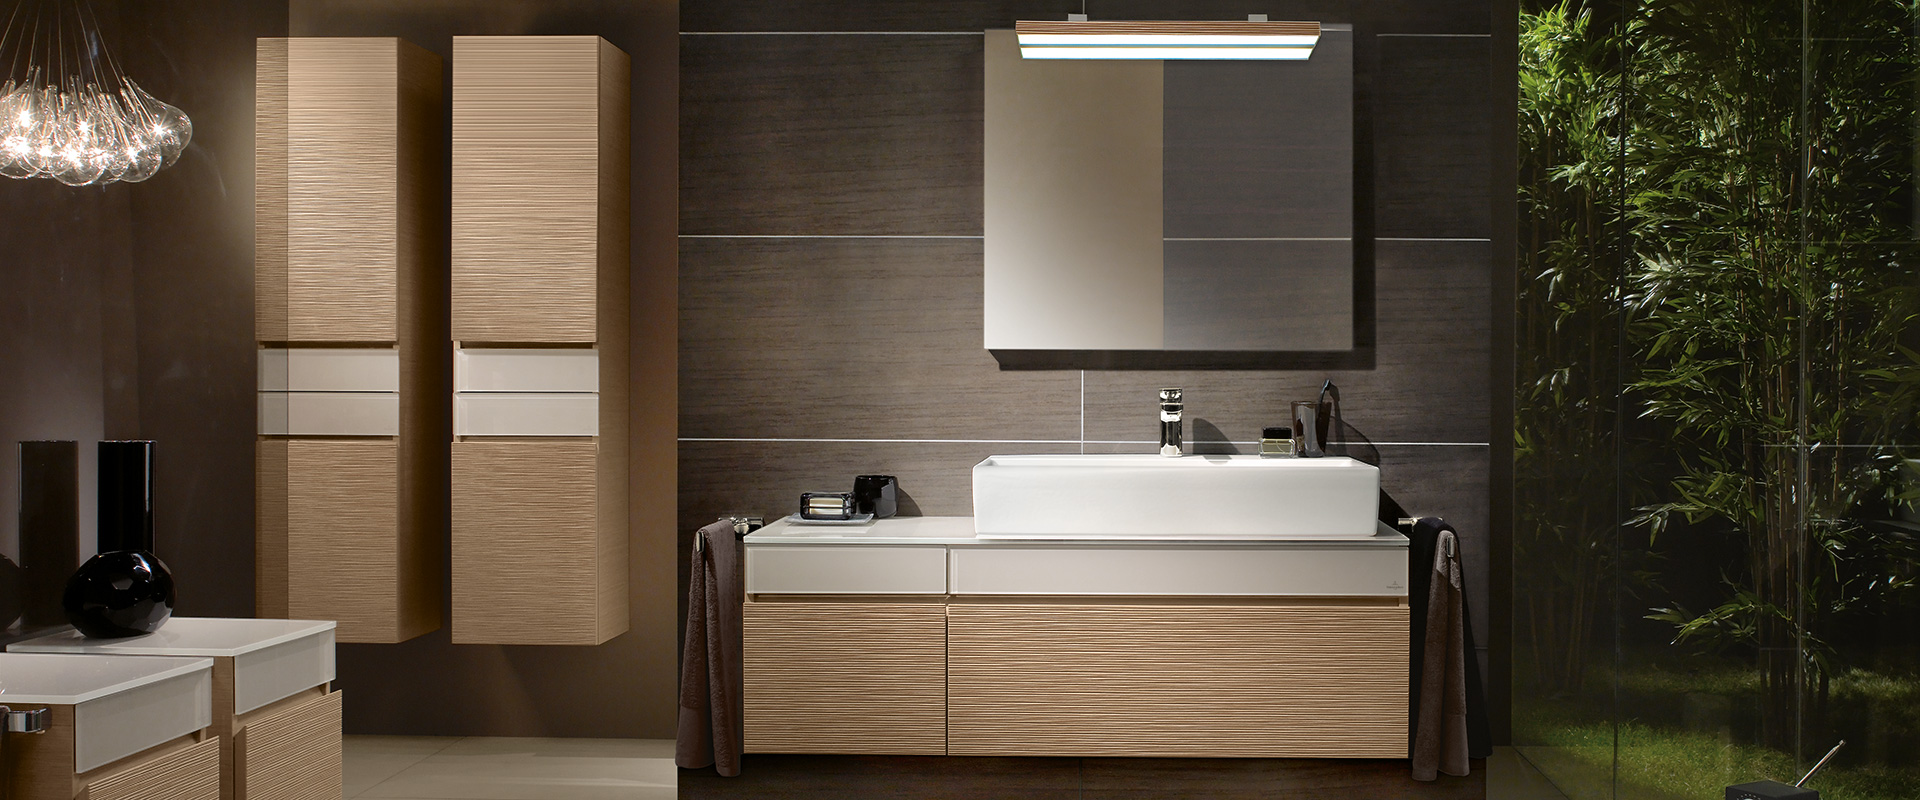 villeroy and boch bathroom cabinets design decoration